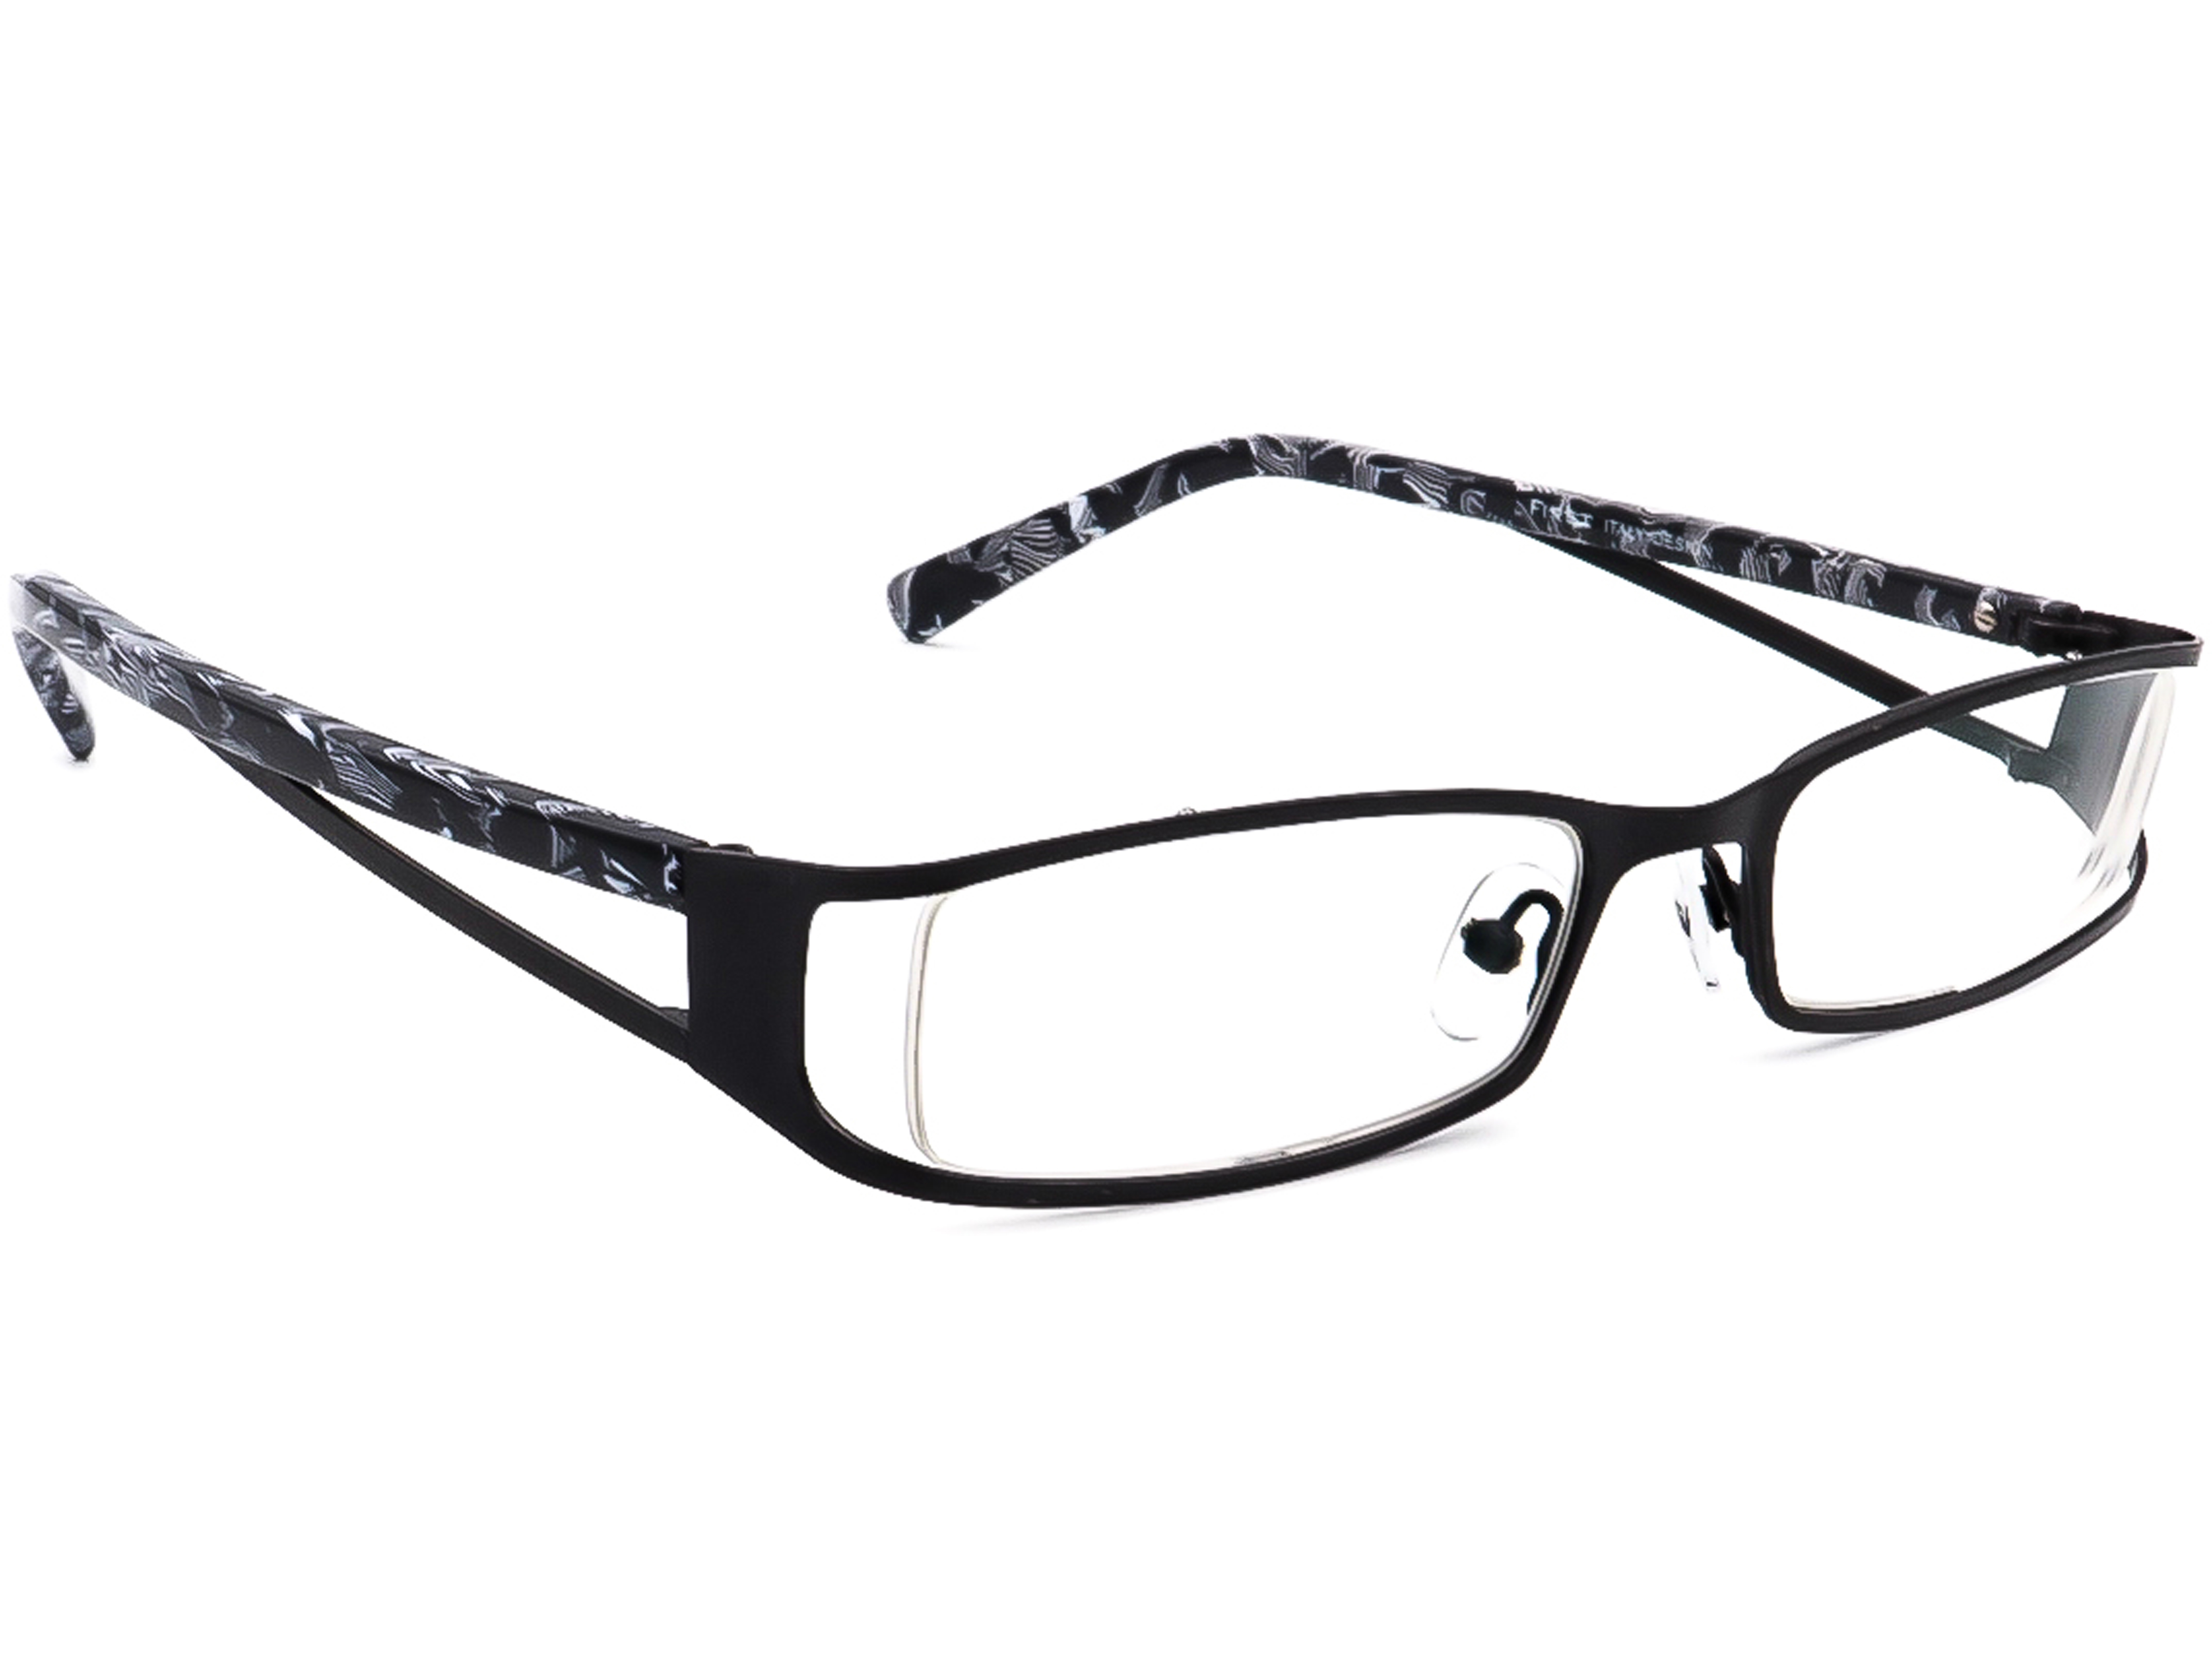 First F2008 COL 19 Eyeglasses